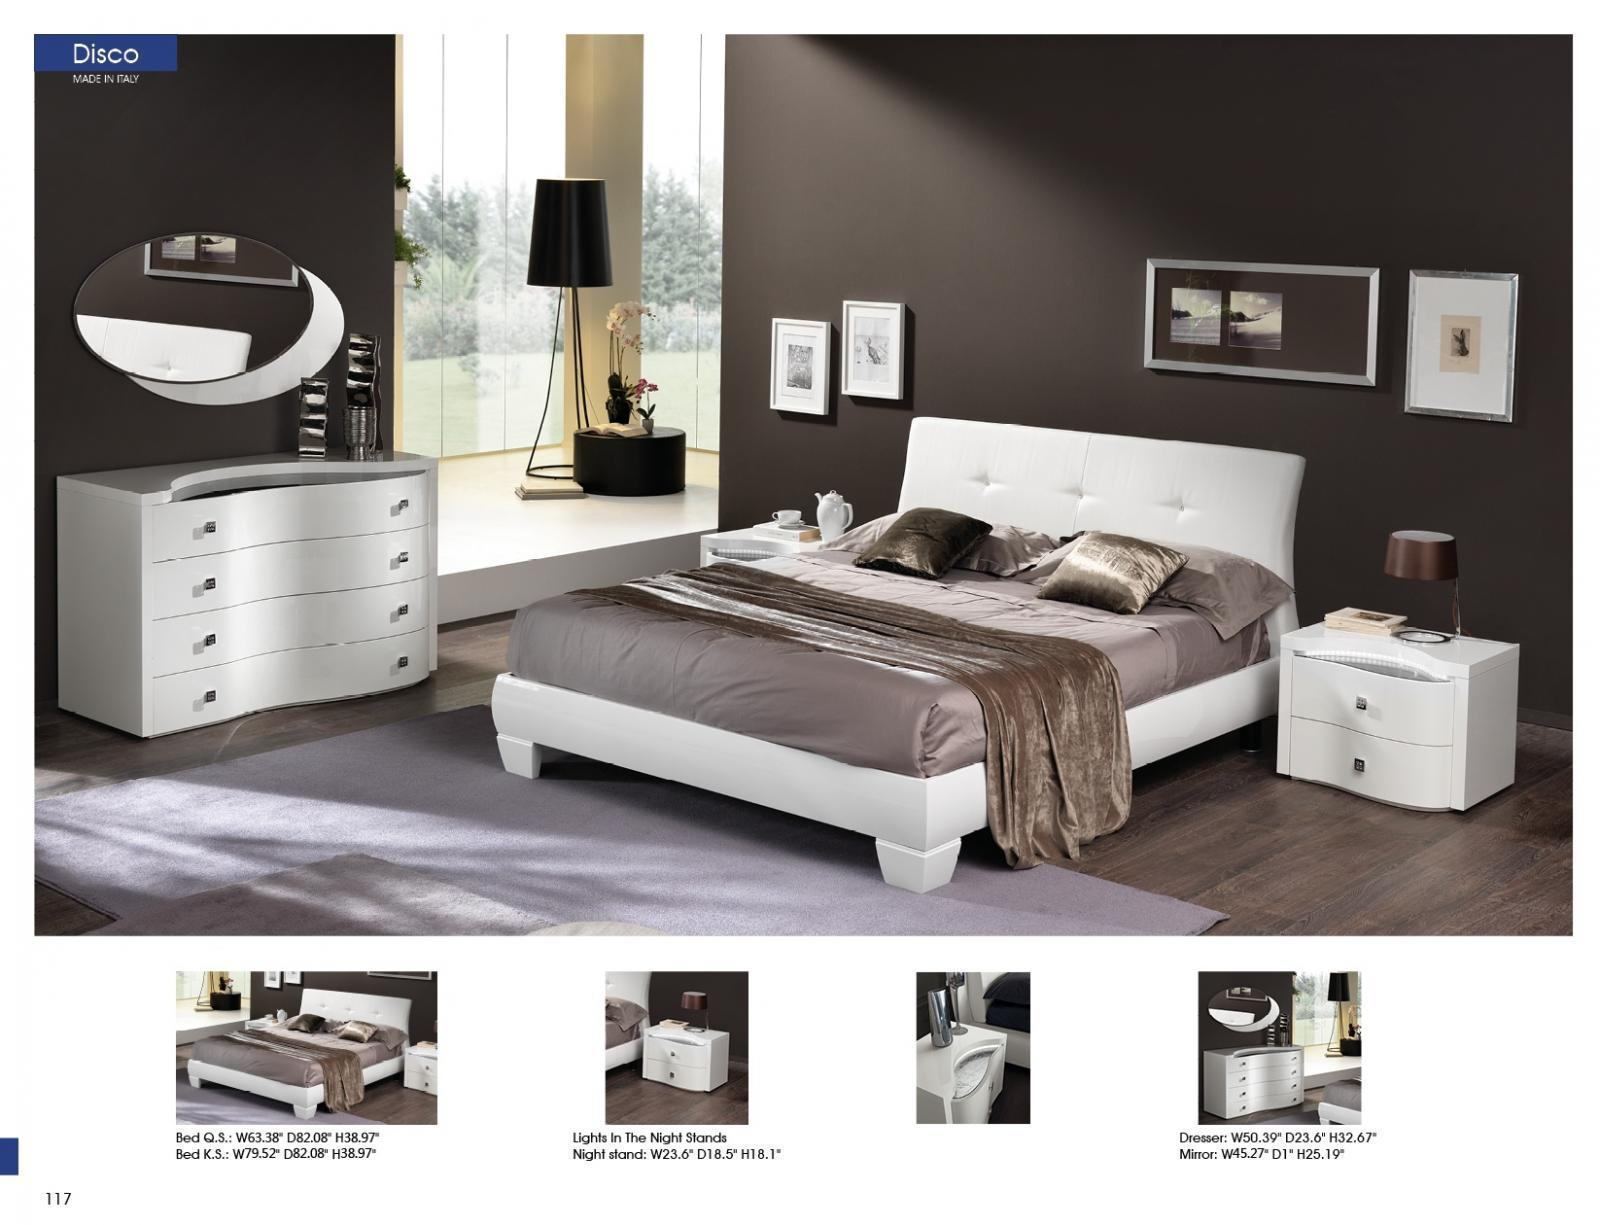 ESF Disco King Size Bedroom Set 5pcs White Contemporary Made in Italy